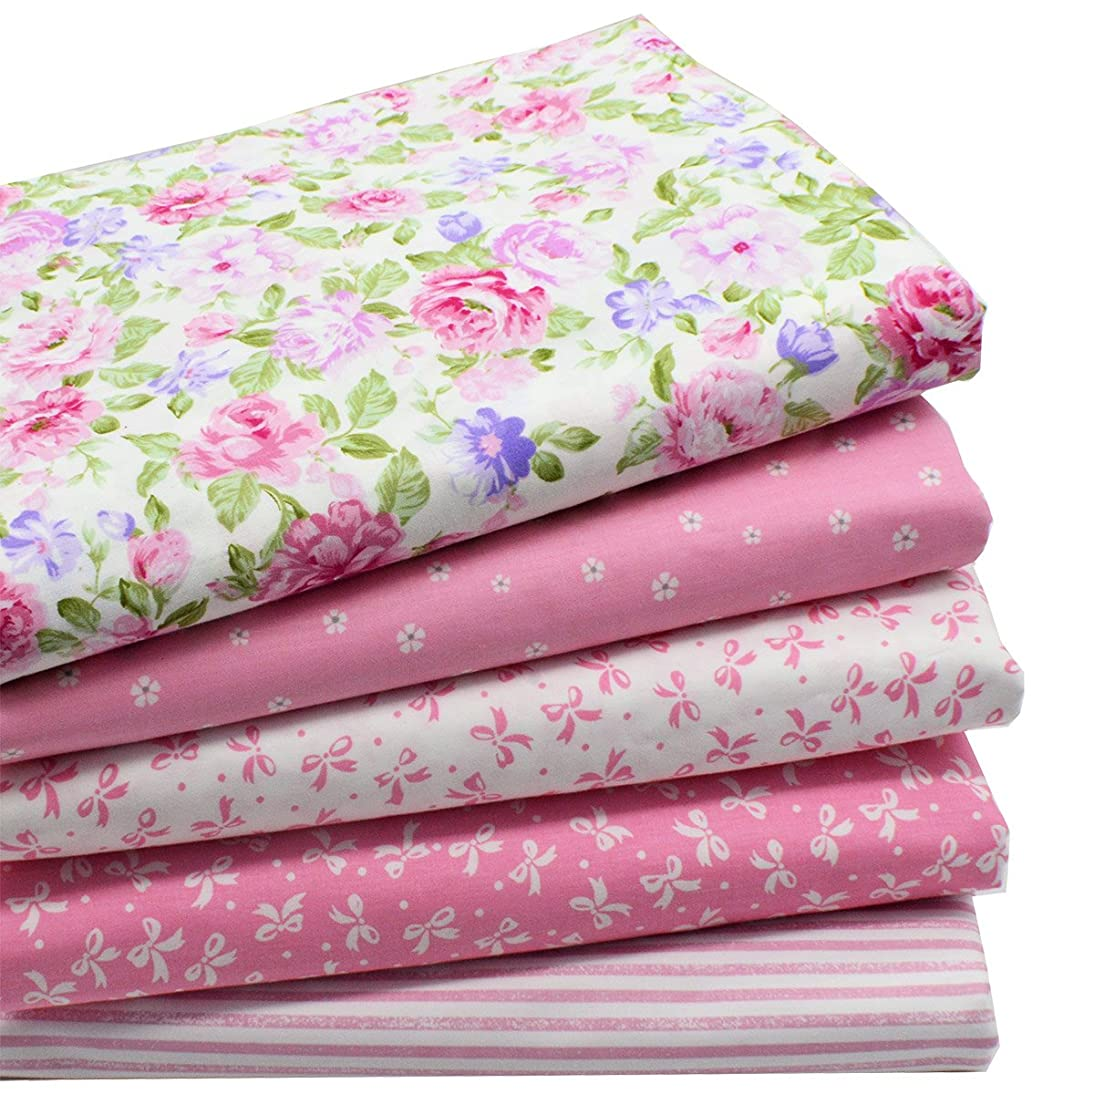 iNee Pink Fat Quarters Quilting Fabric Bundles for Quilting Sewing Crafting,18